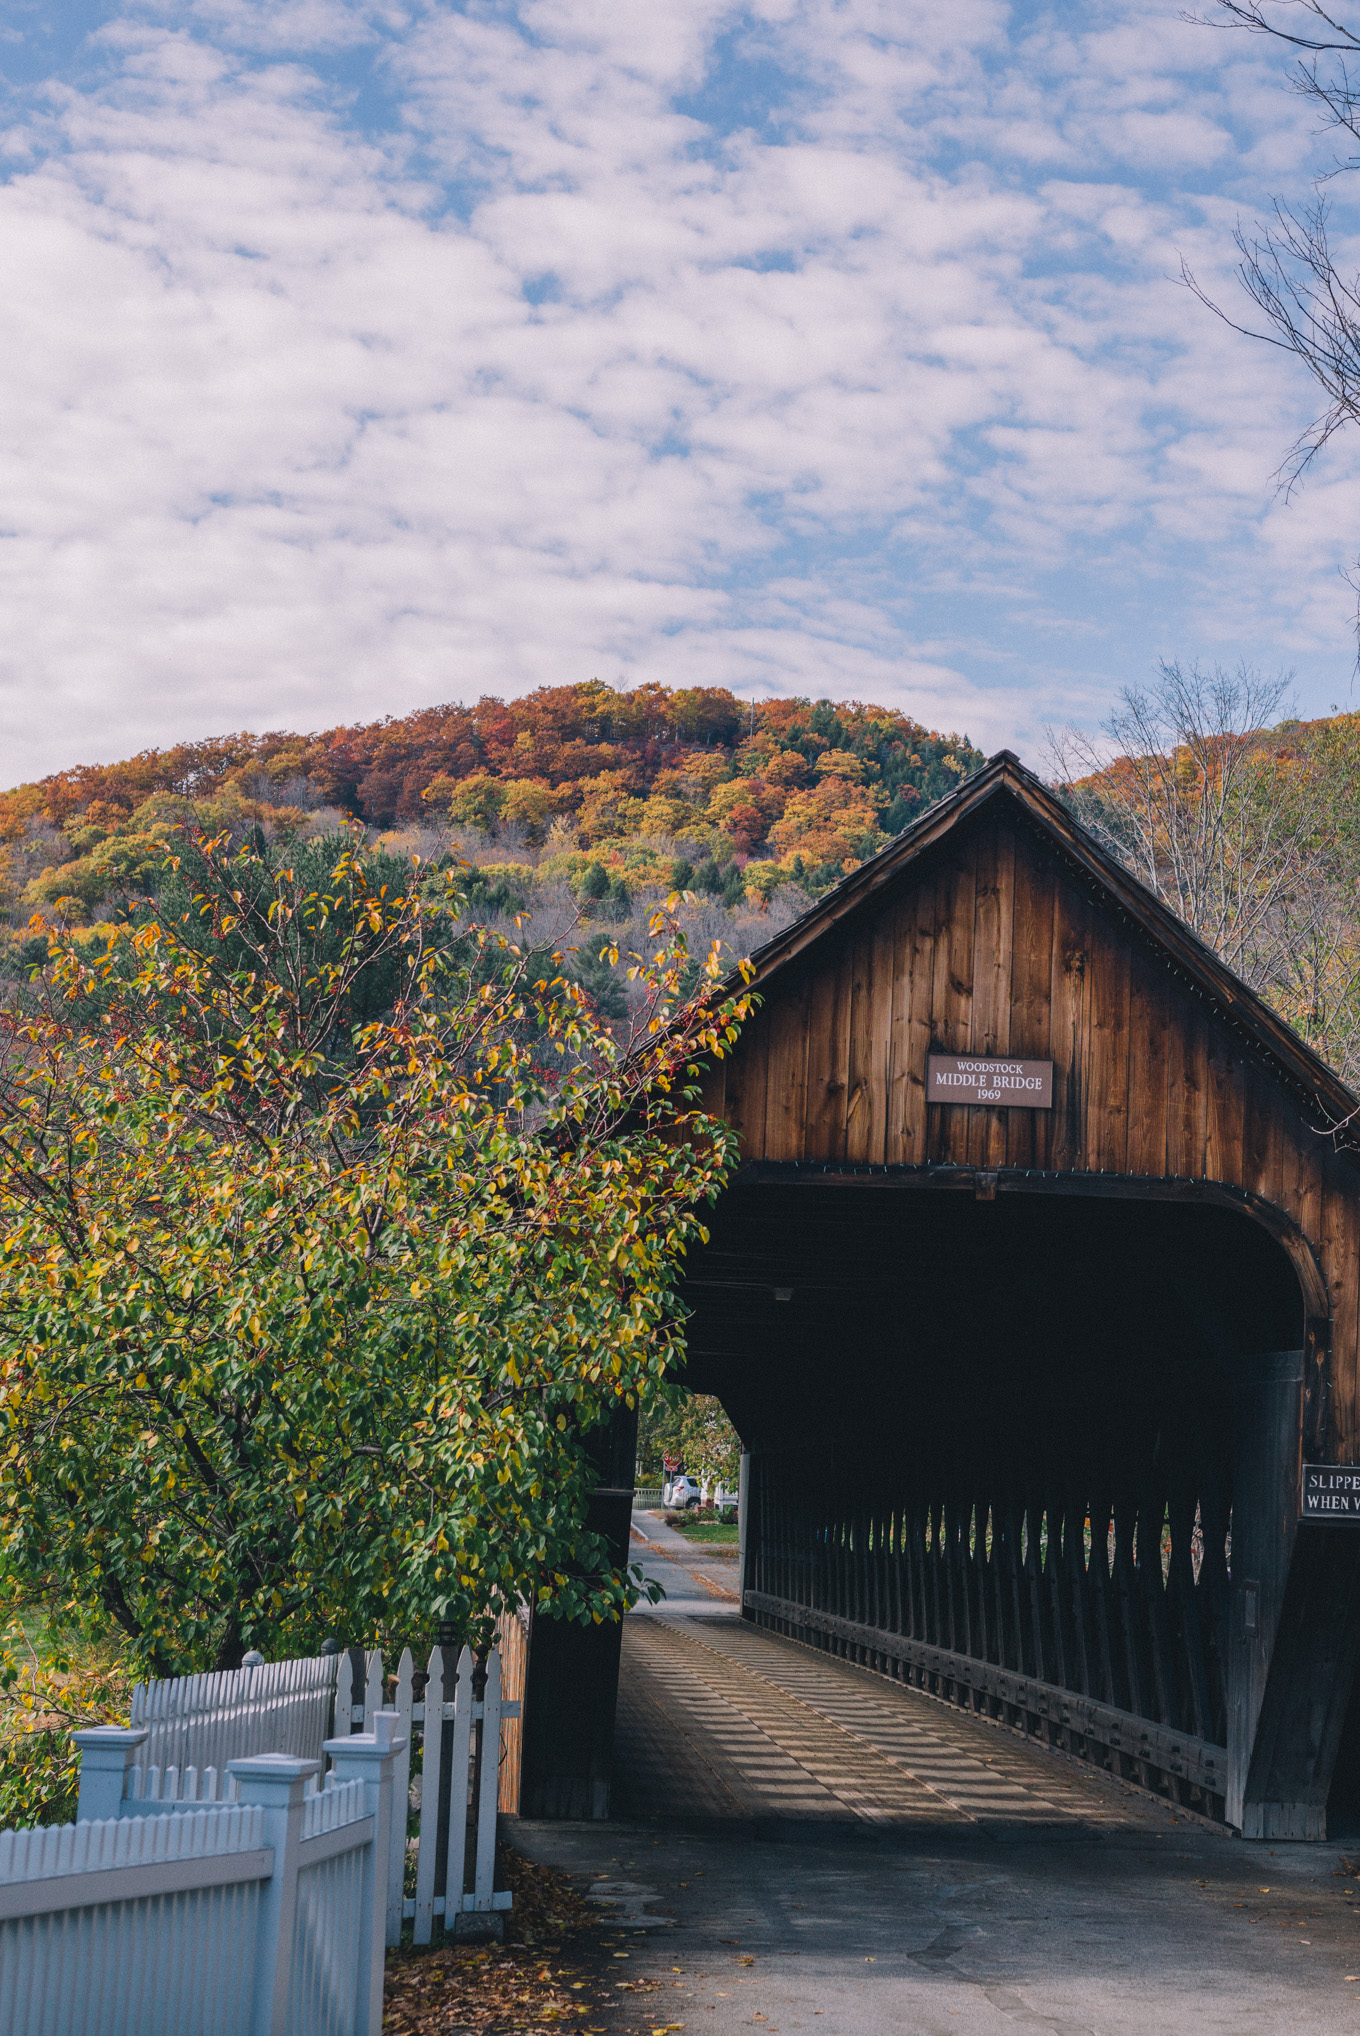 gmg-woodstock-vermont-fall-1000349